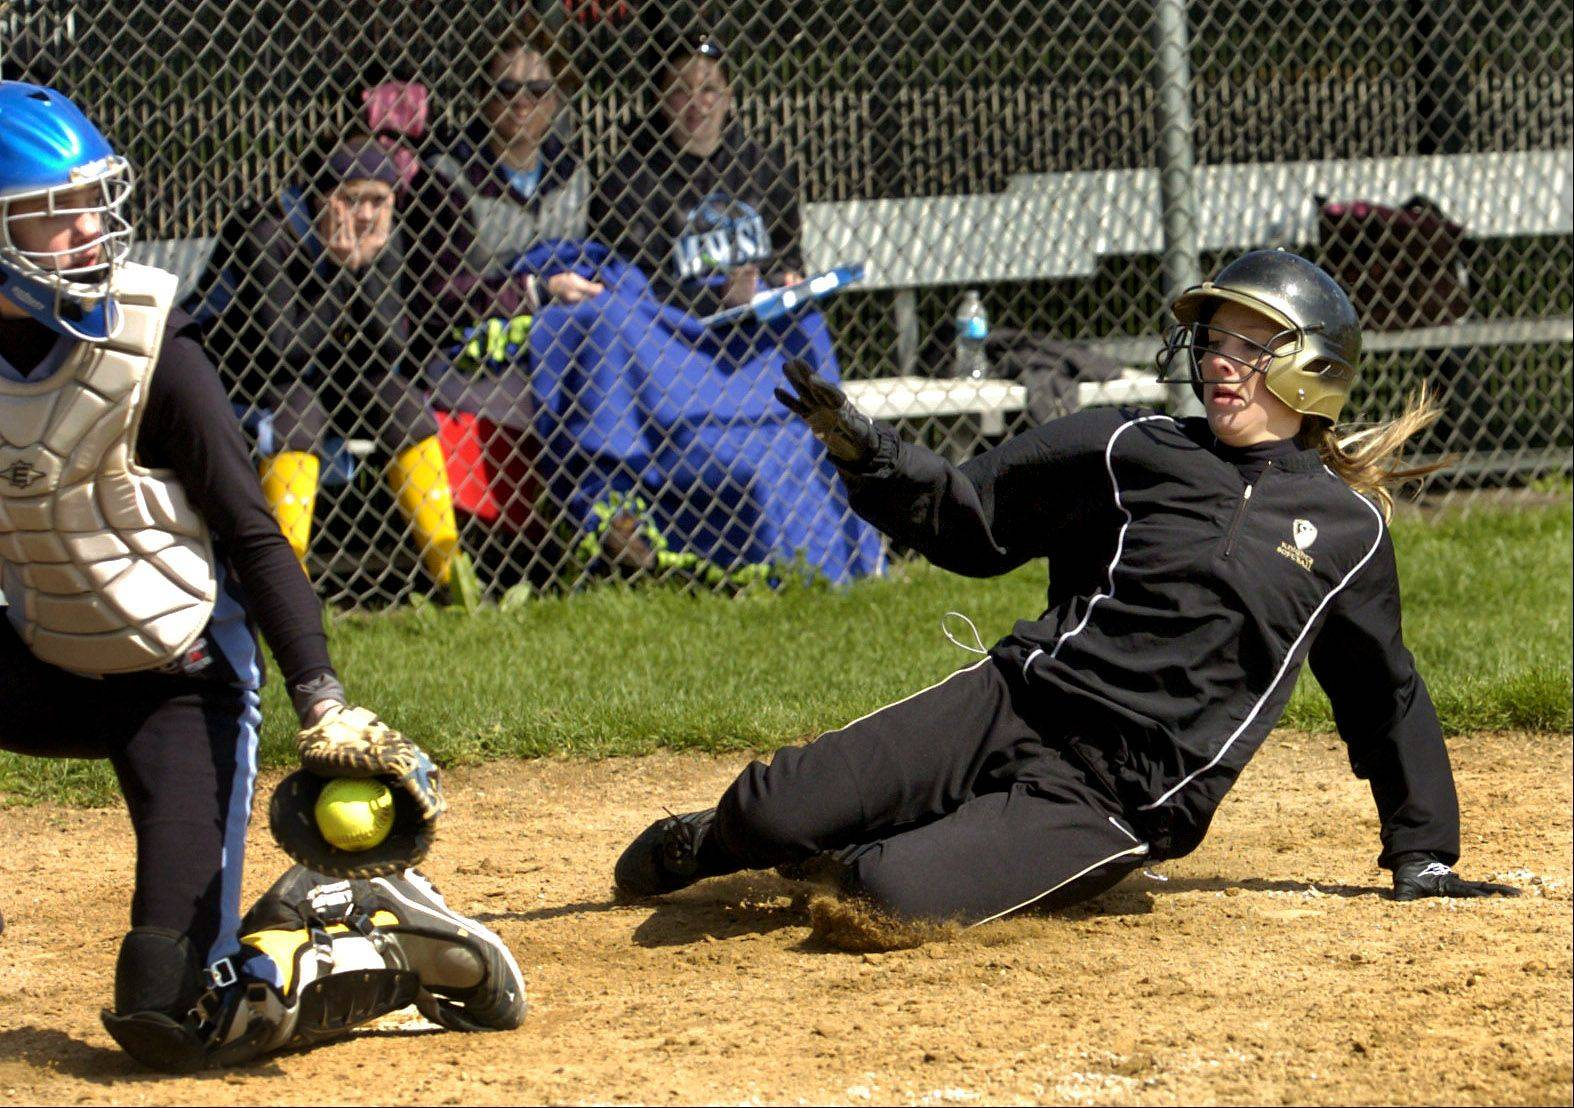 Megan Mertins slides safe into home during Monday's Grayslake North at Maine West softball softball game.